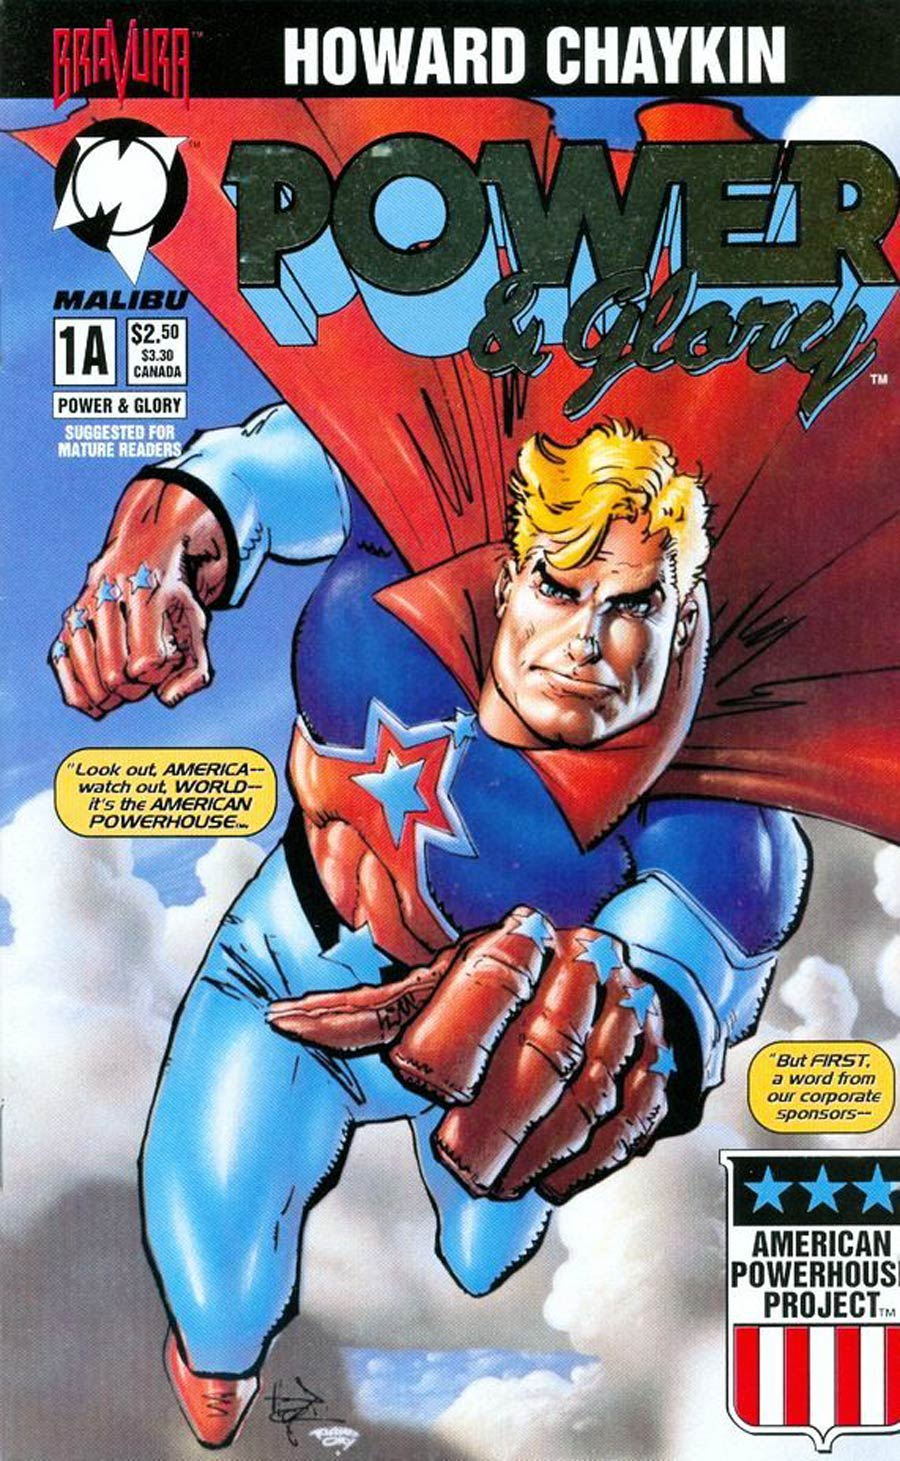 Power & Glory #1 Cover D Silver Foil Cover